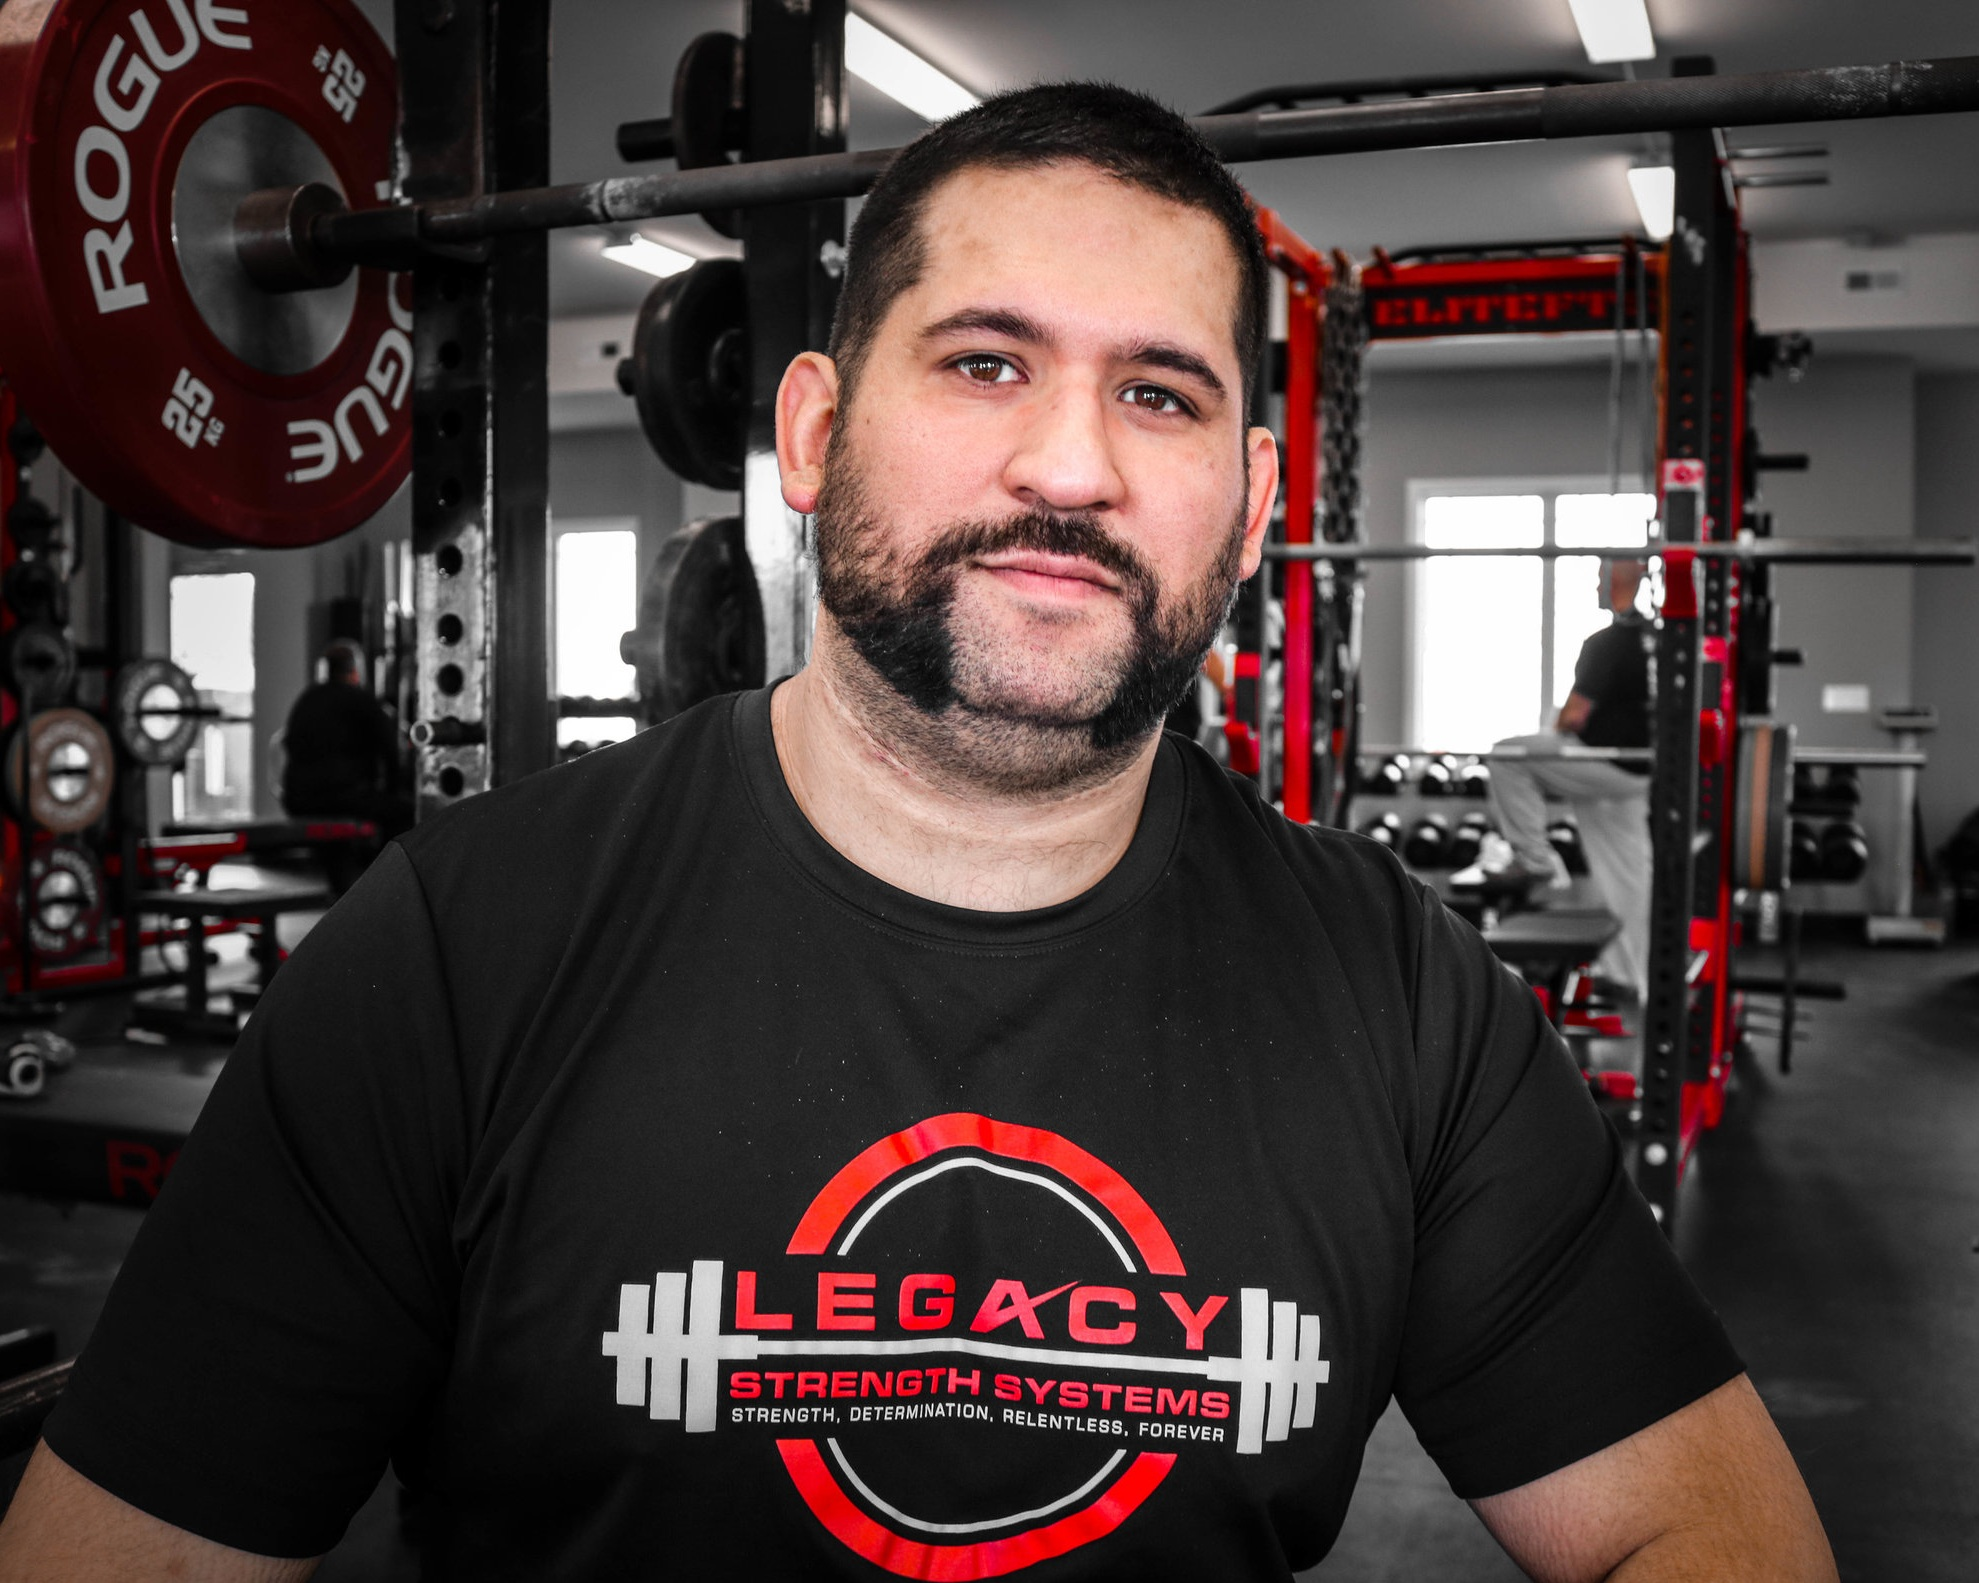 """- """"RPR is the greatest discovery we've had in long time. I have been certified Level 1 and 2 and have seen some pretty amazing things; from increased broad jumps, to faster swim times, to better bowel function (no joke).""""- Pete Arroyo, Owner @ Legacy Strength Systems, Aurora, Illinois"""